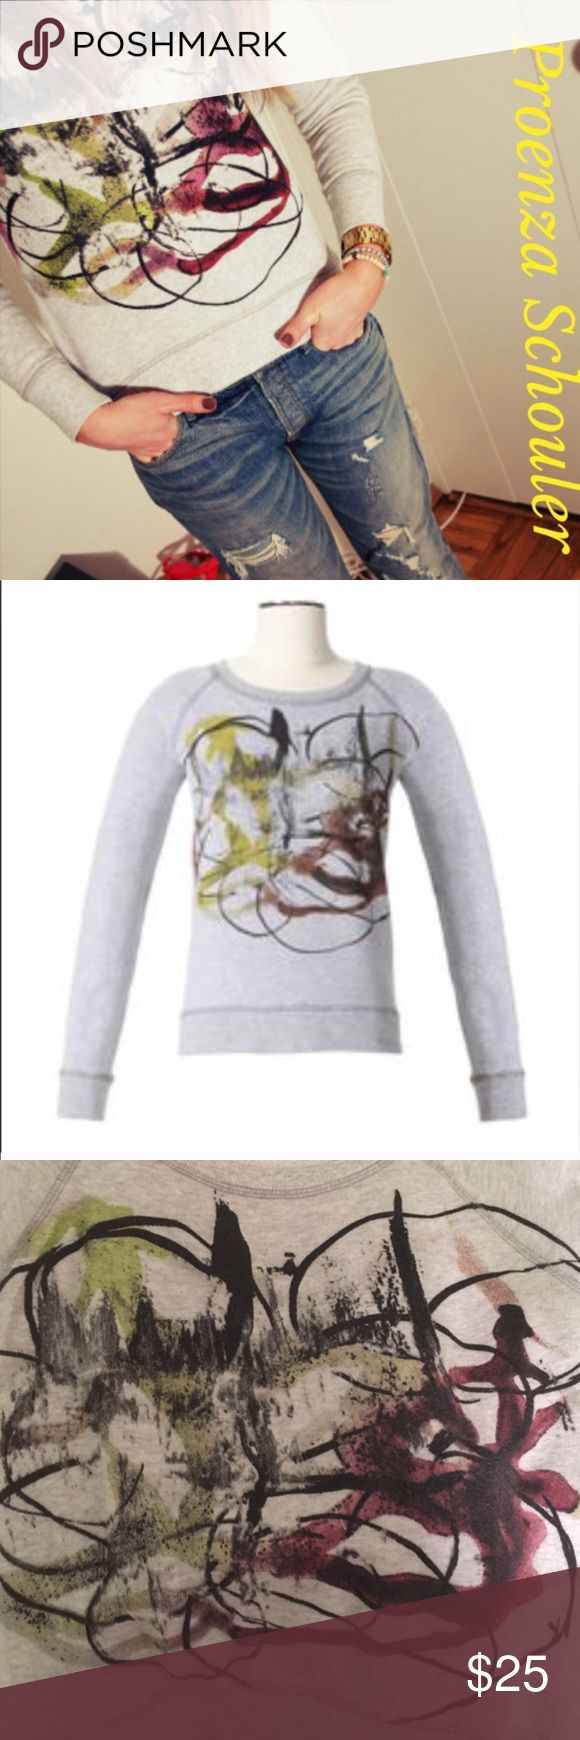 Proenza Schouler Neimun Marcus 4 Target sweatshirt Proenaza Schouler gray and multicolor sweatshirt from the Neiman Marcus for Target collection. So cute and perfect to wear year round. Worn a handful of times. Open to offers, no trades. Neiman Marcus Tops Sweatshirts & Hoodies